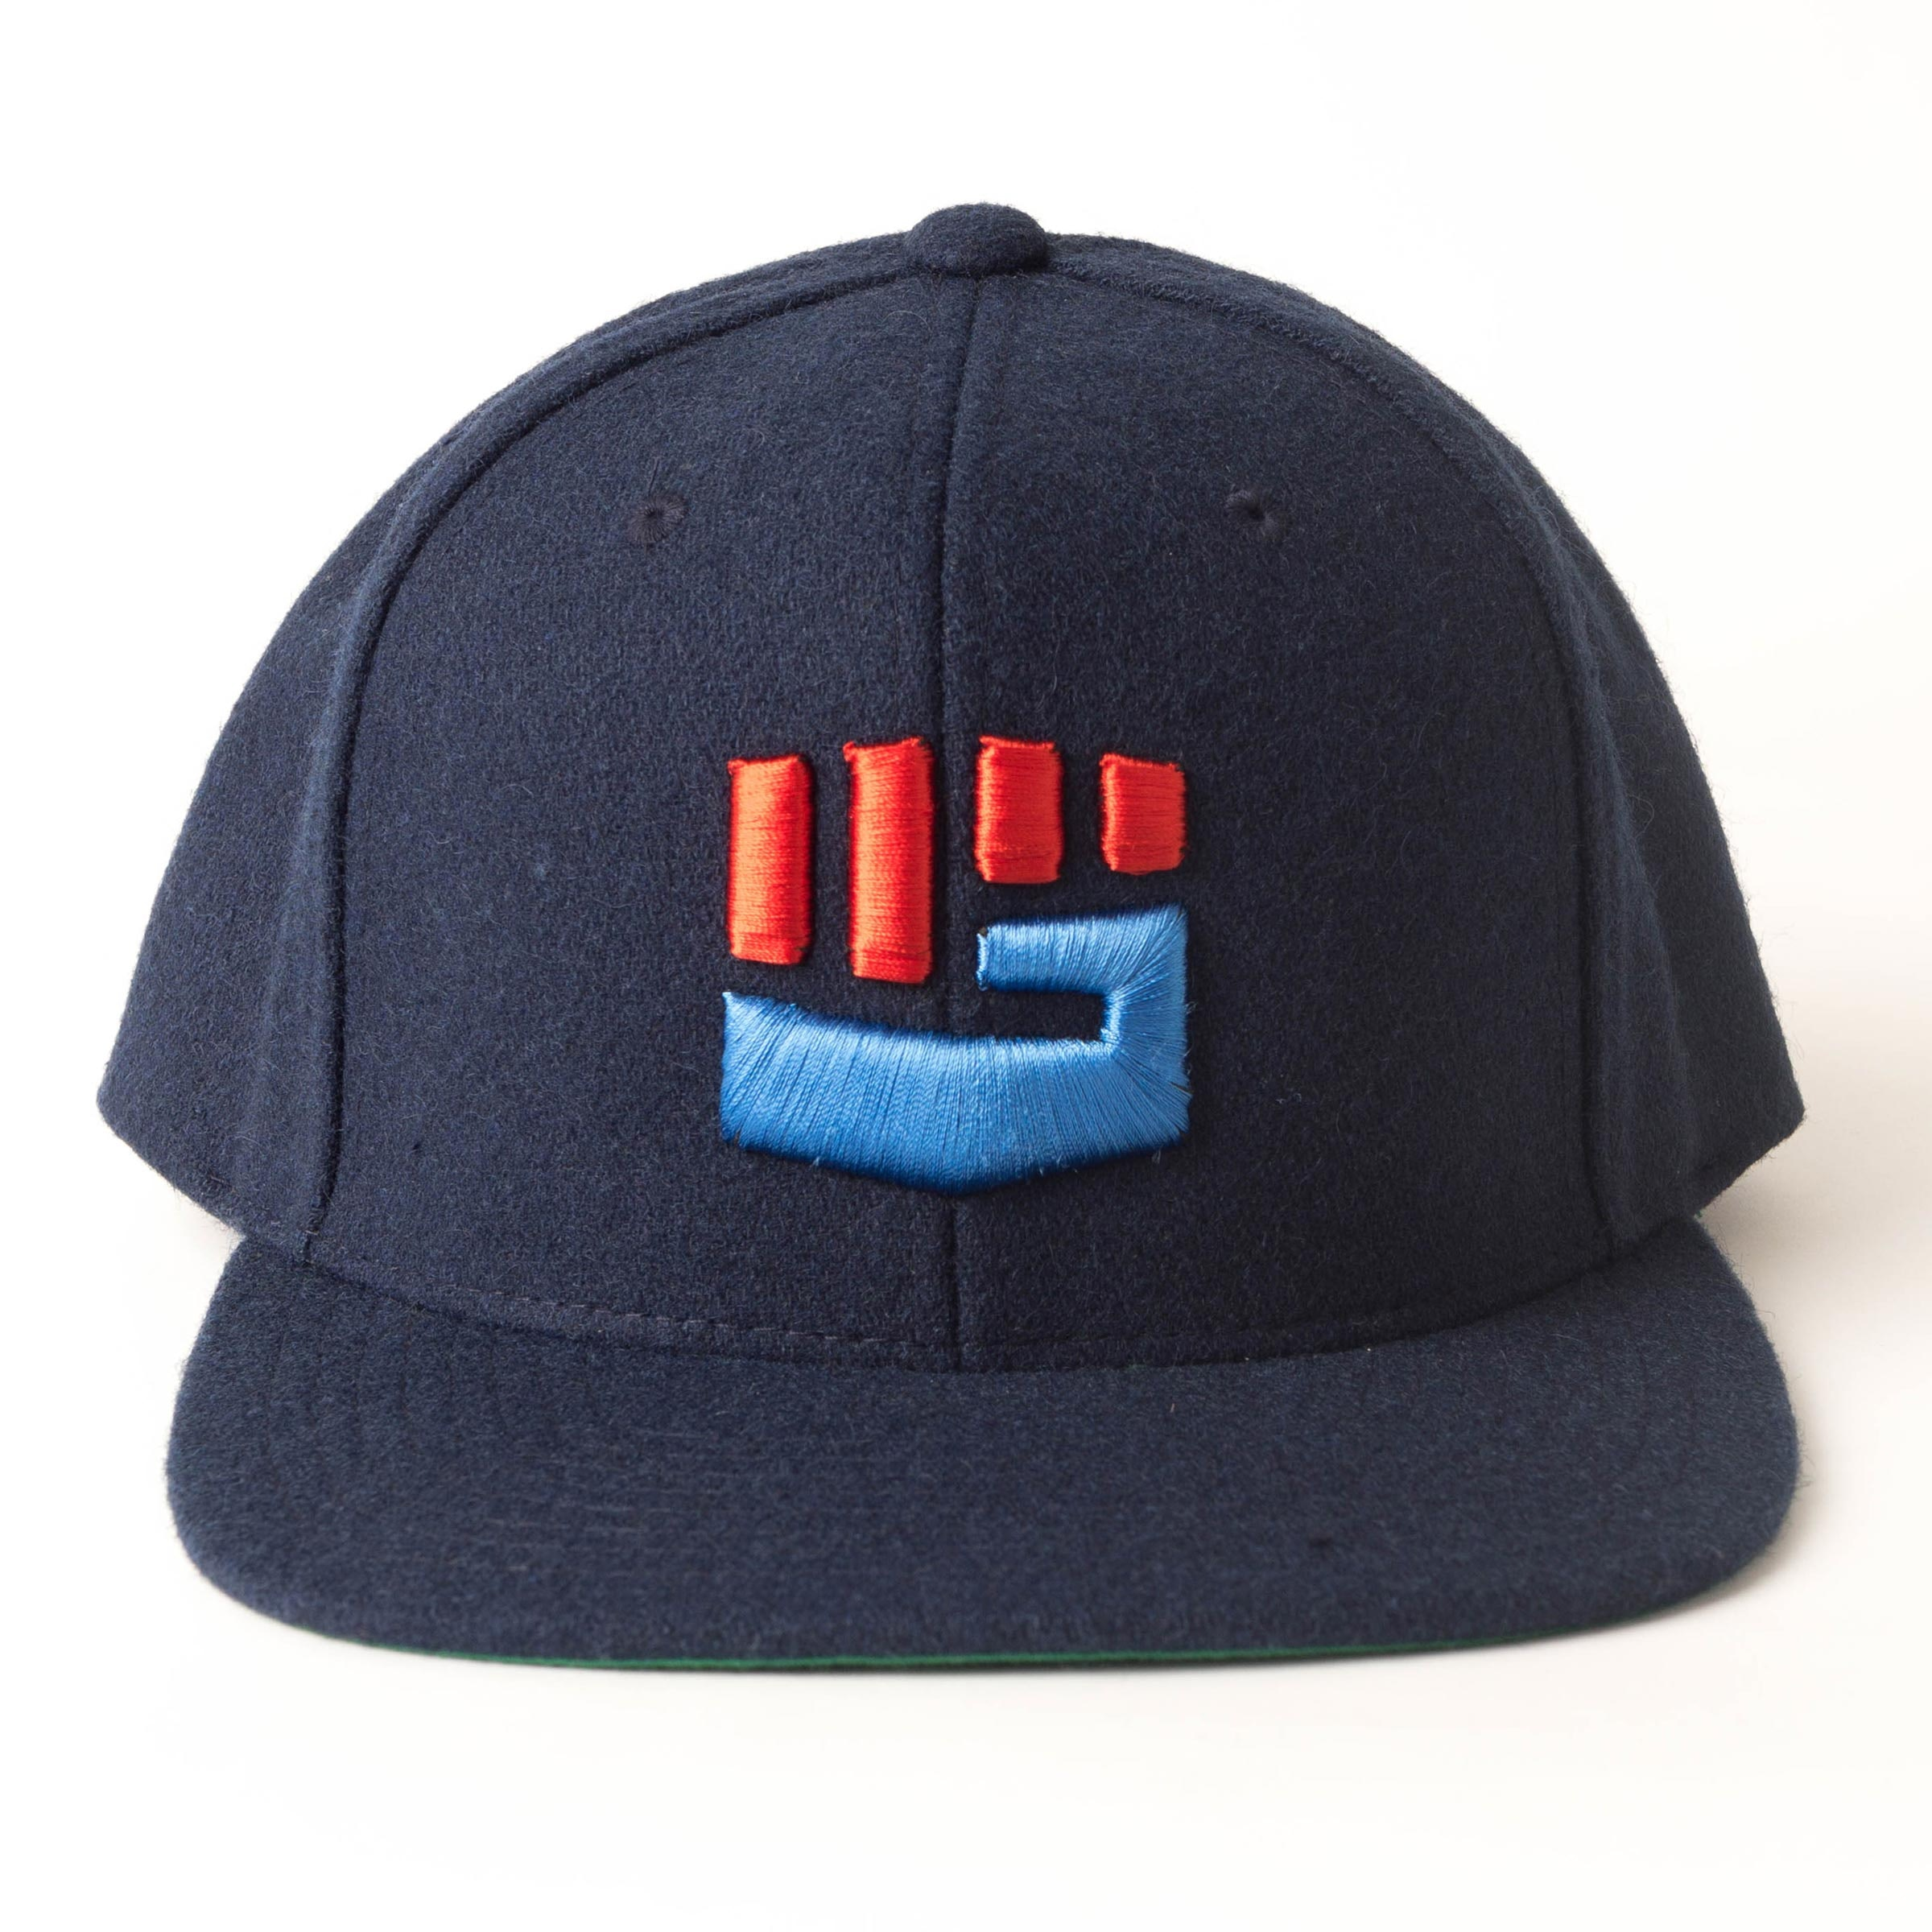 The Sleeping Giants Snapback